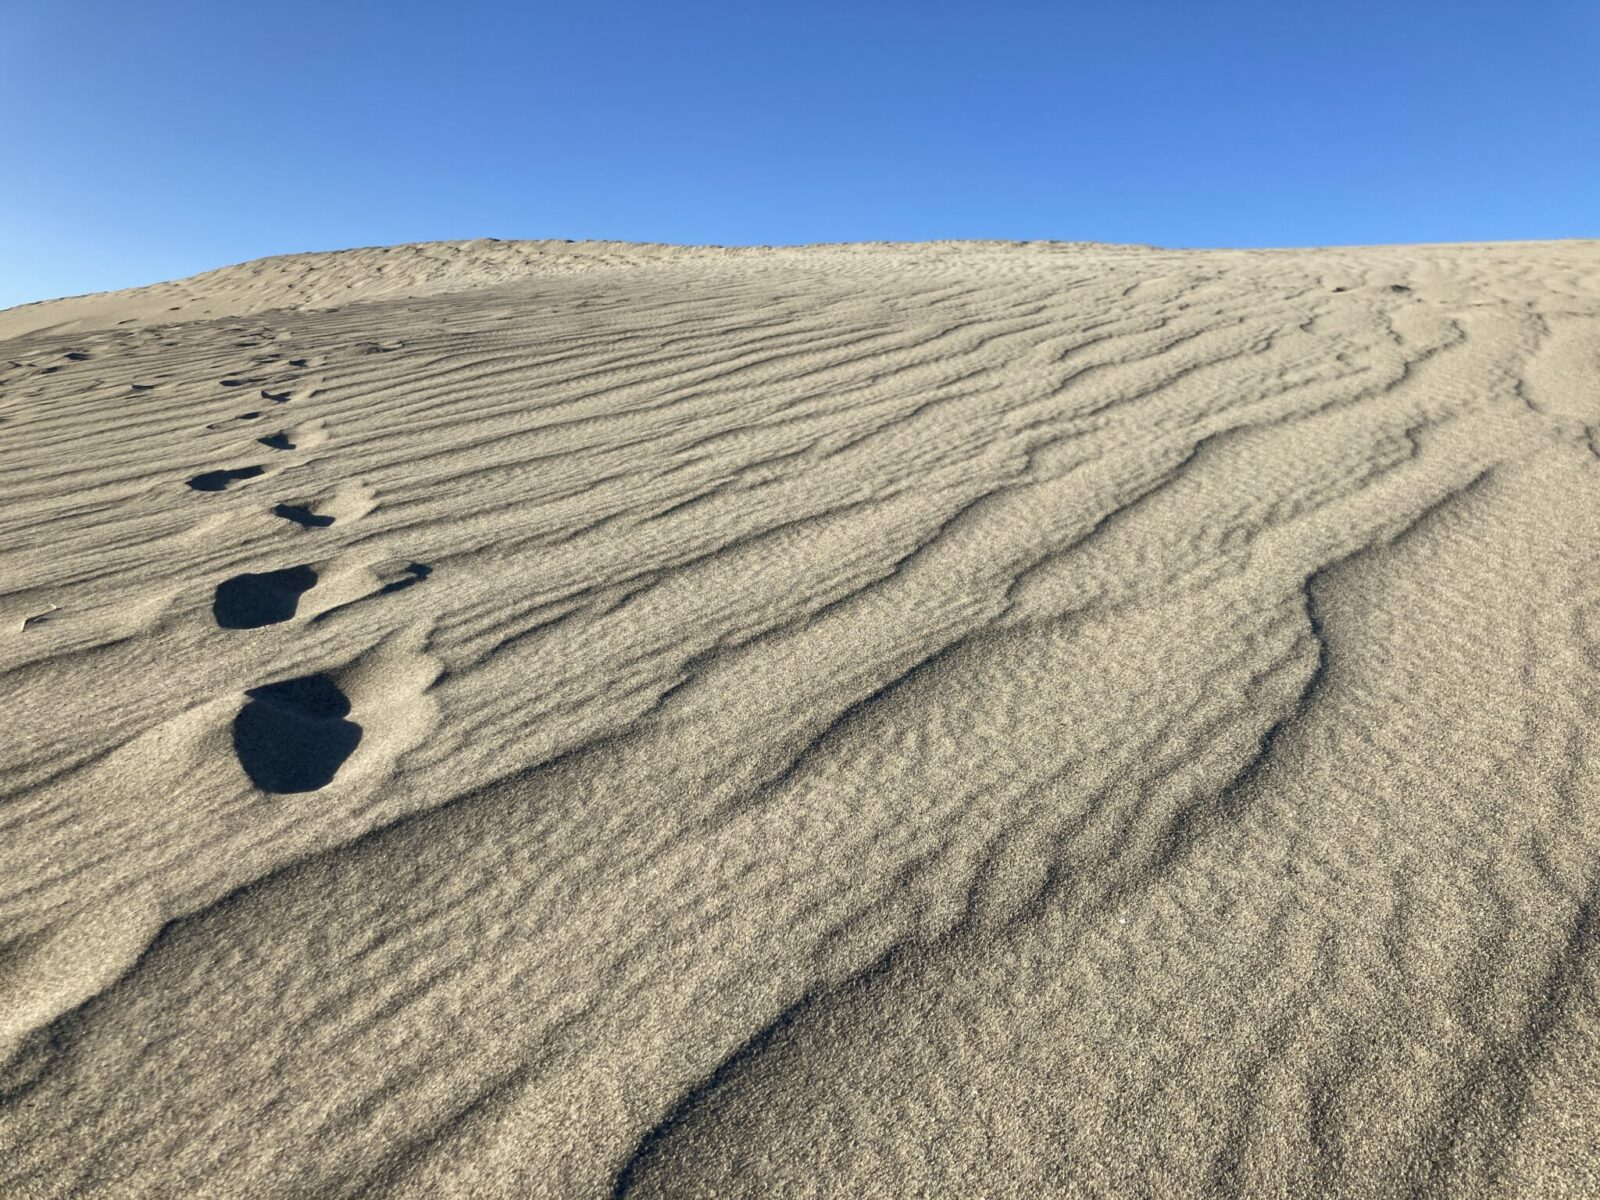 A sand dune sticking up into a blue sky with some foot prints going to the top. There is also a wave pattern produced by the wind on the top of the sand